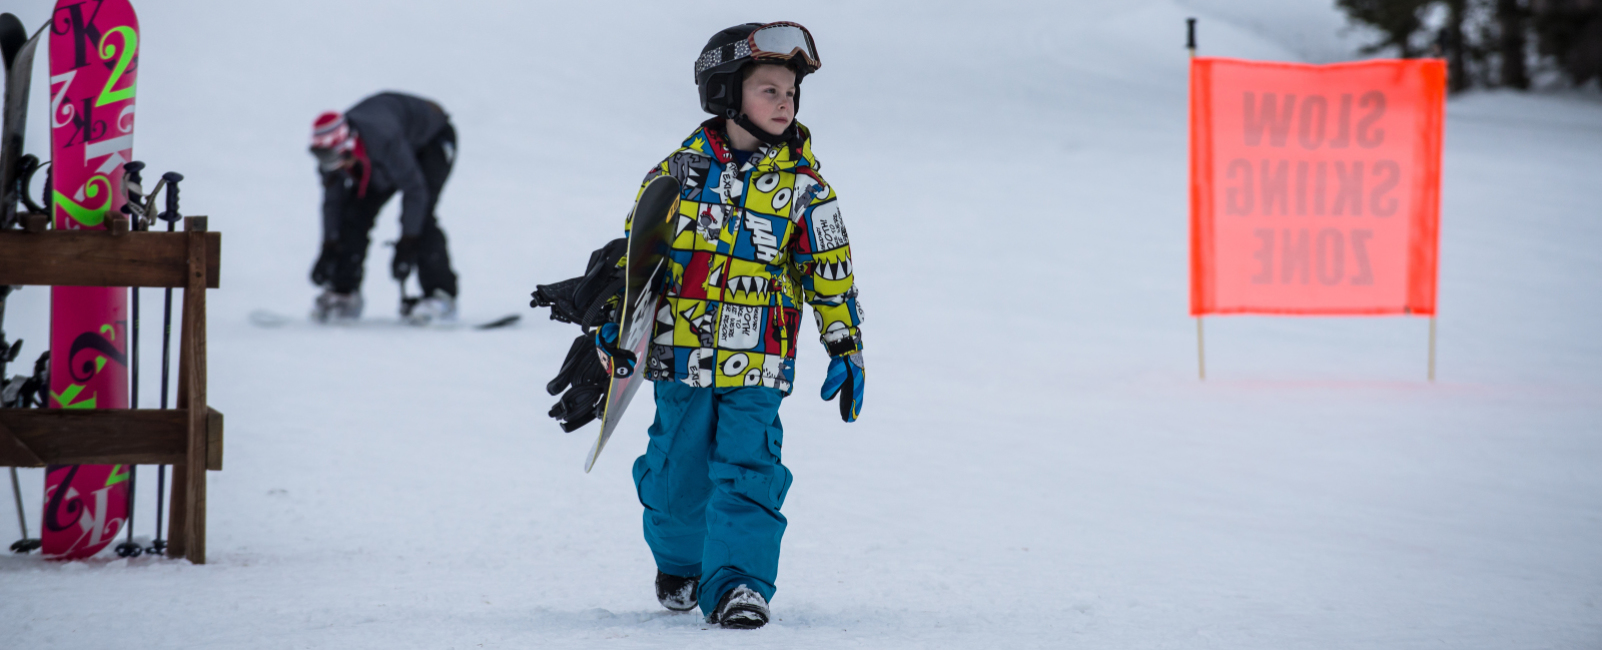 My Child Wants to Snowboard: What Now?